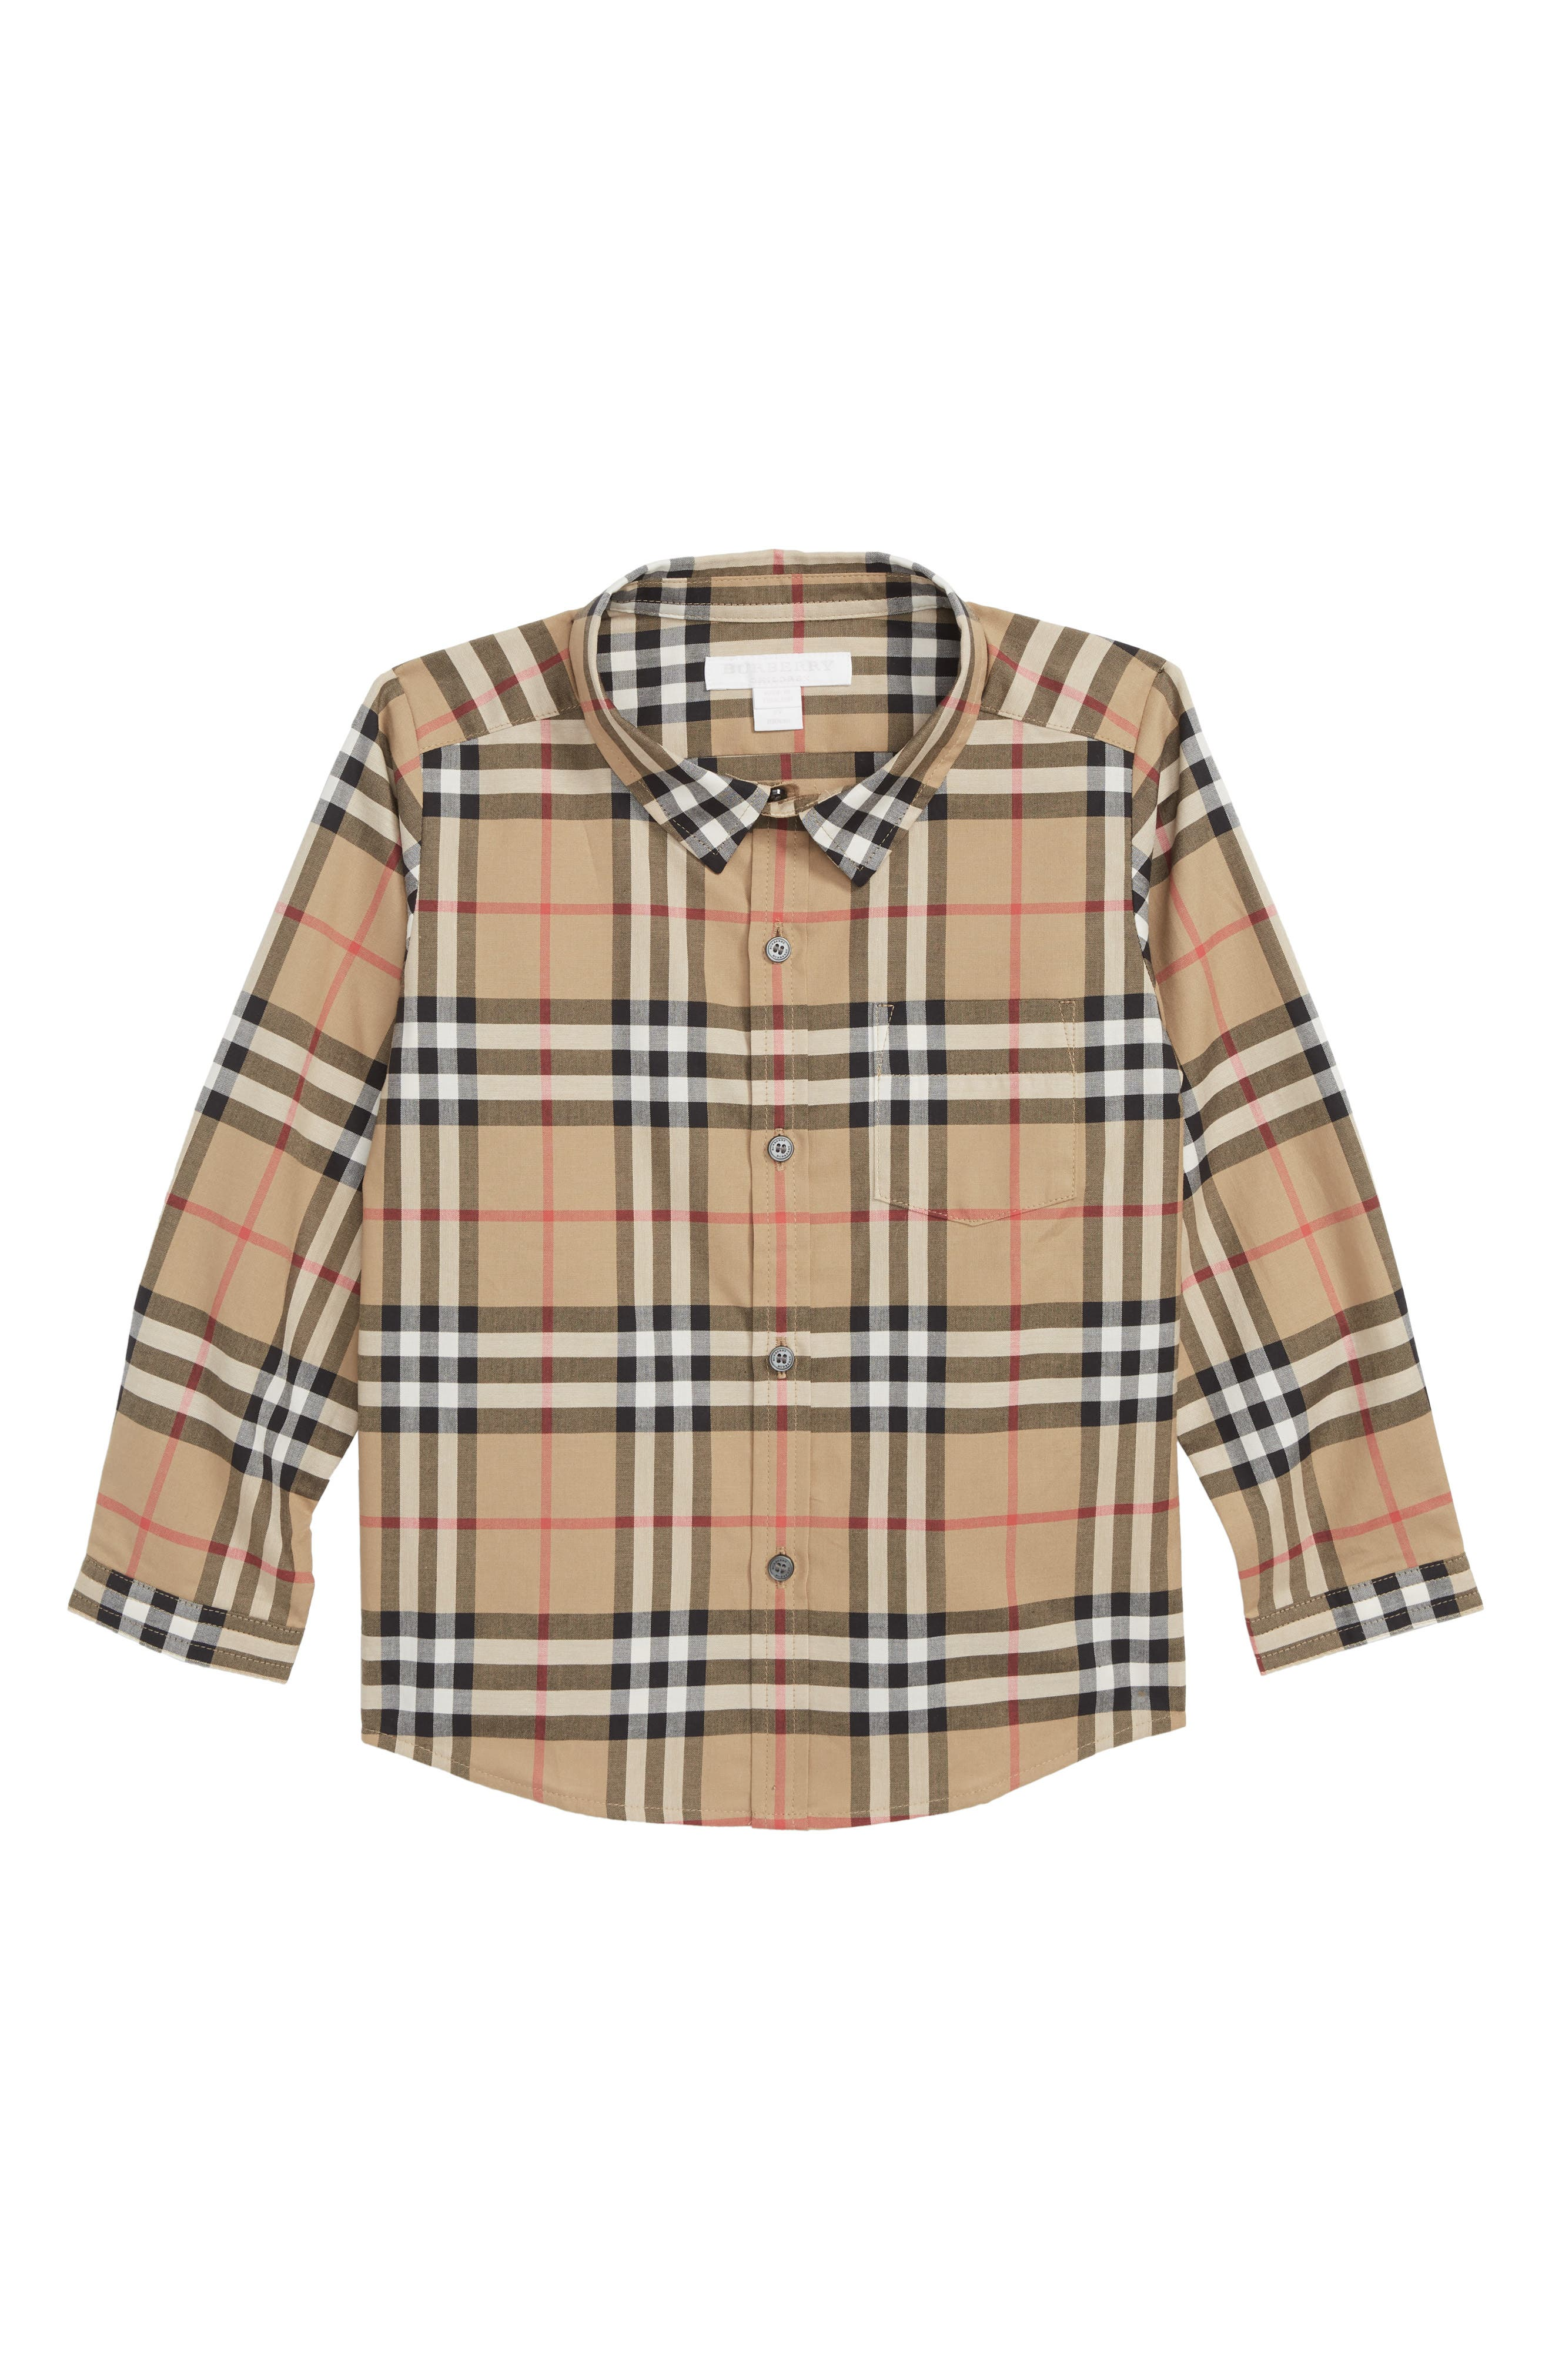 Fred Check Shirt,                         Main,                         color, ANTIQUE YELLOW